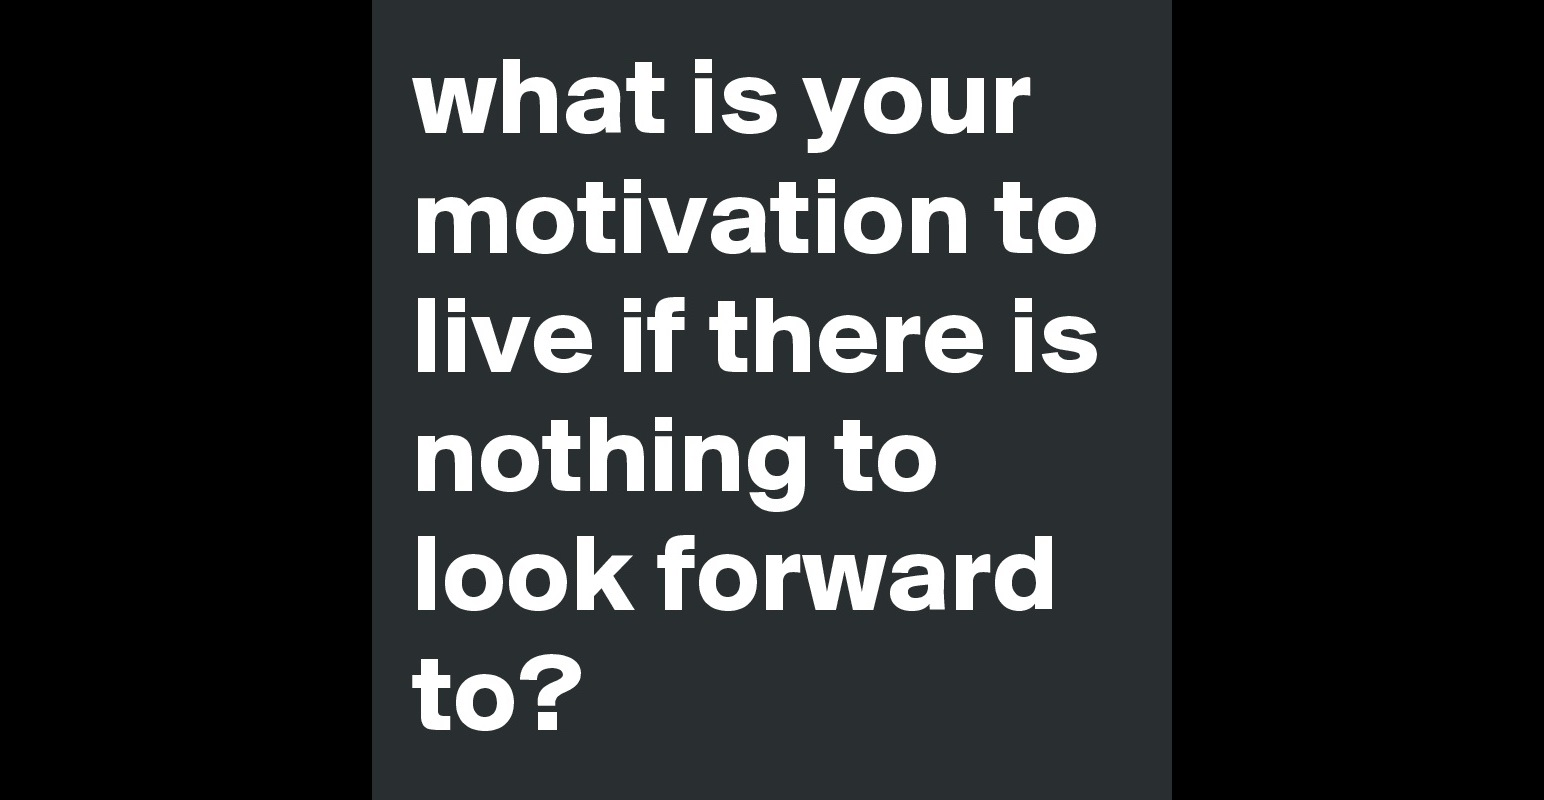 what is your motivation to live if there is nothing to look what is your motivation to live if there is nothing to look forward to post by elfilein on boldomatic